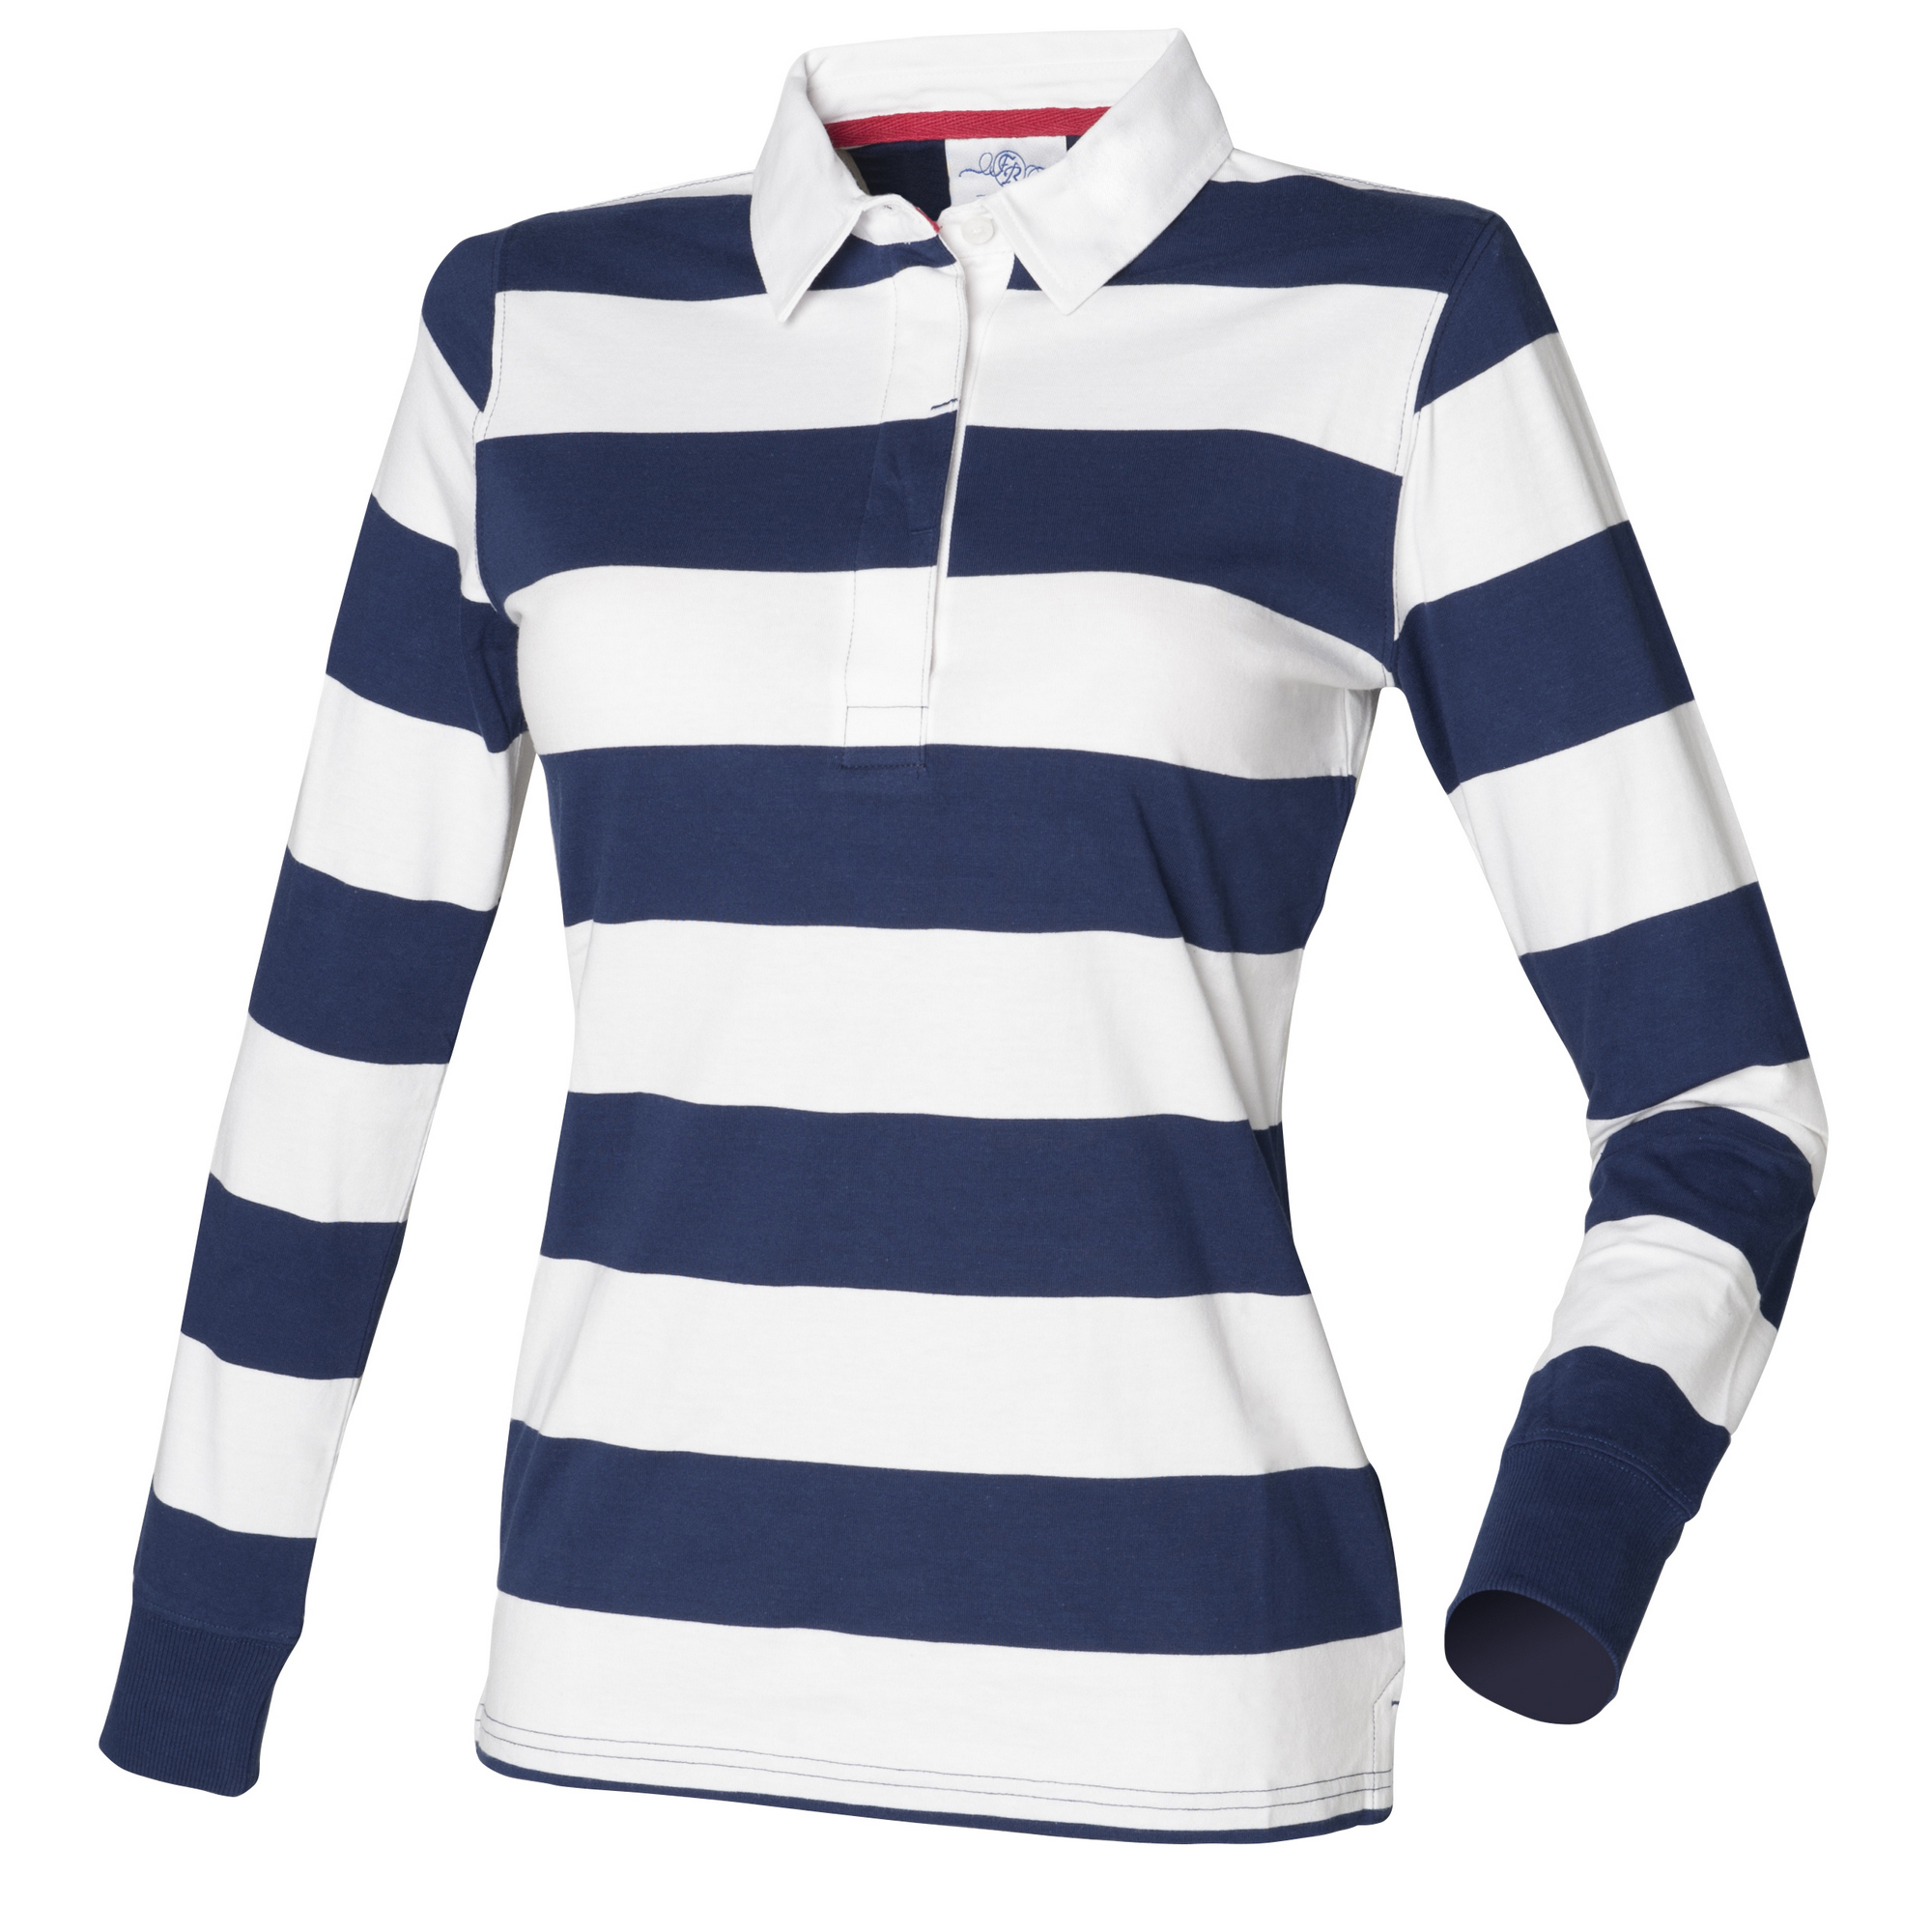 Rugby Shirts Made in USA! Heavy weight and durable, our genuine, Columbiaknit Rugby shirts are made from 8 ounce or 10 ounce cotton jersey in our factory, located in Portland, Oregon, USA. These shirts are as comfortable from the first day you wear them as your old sweatshirt.